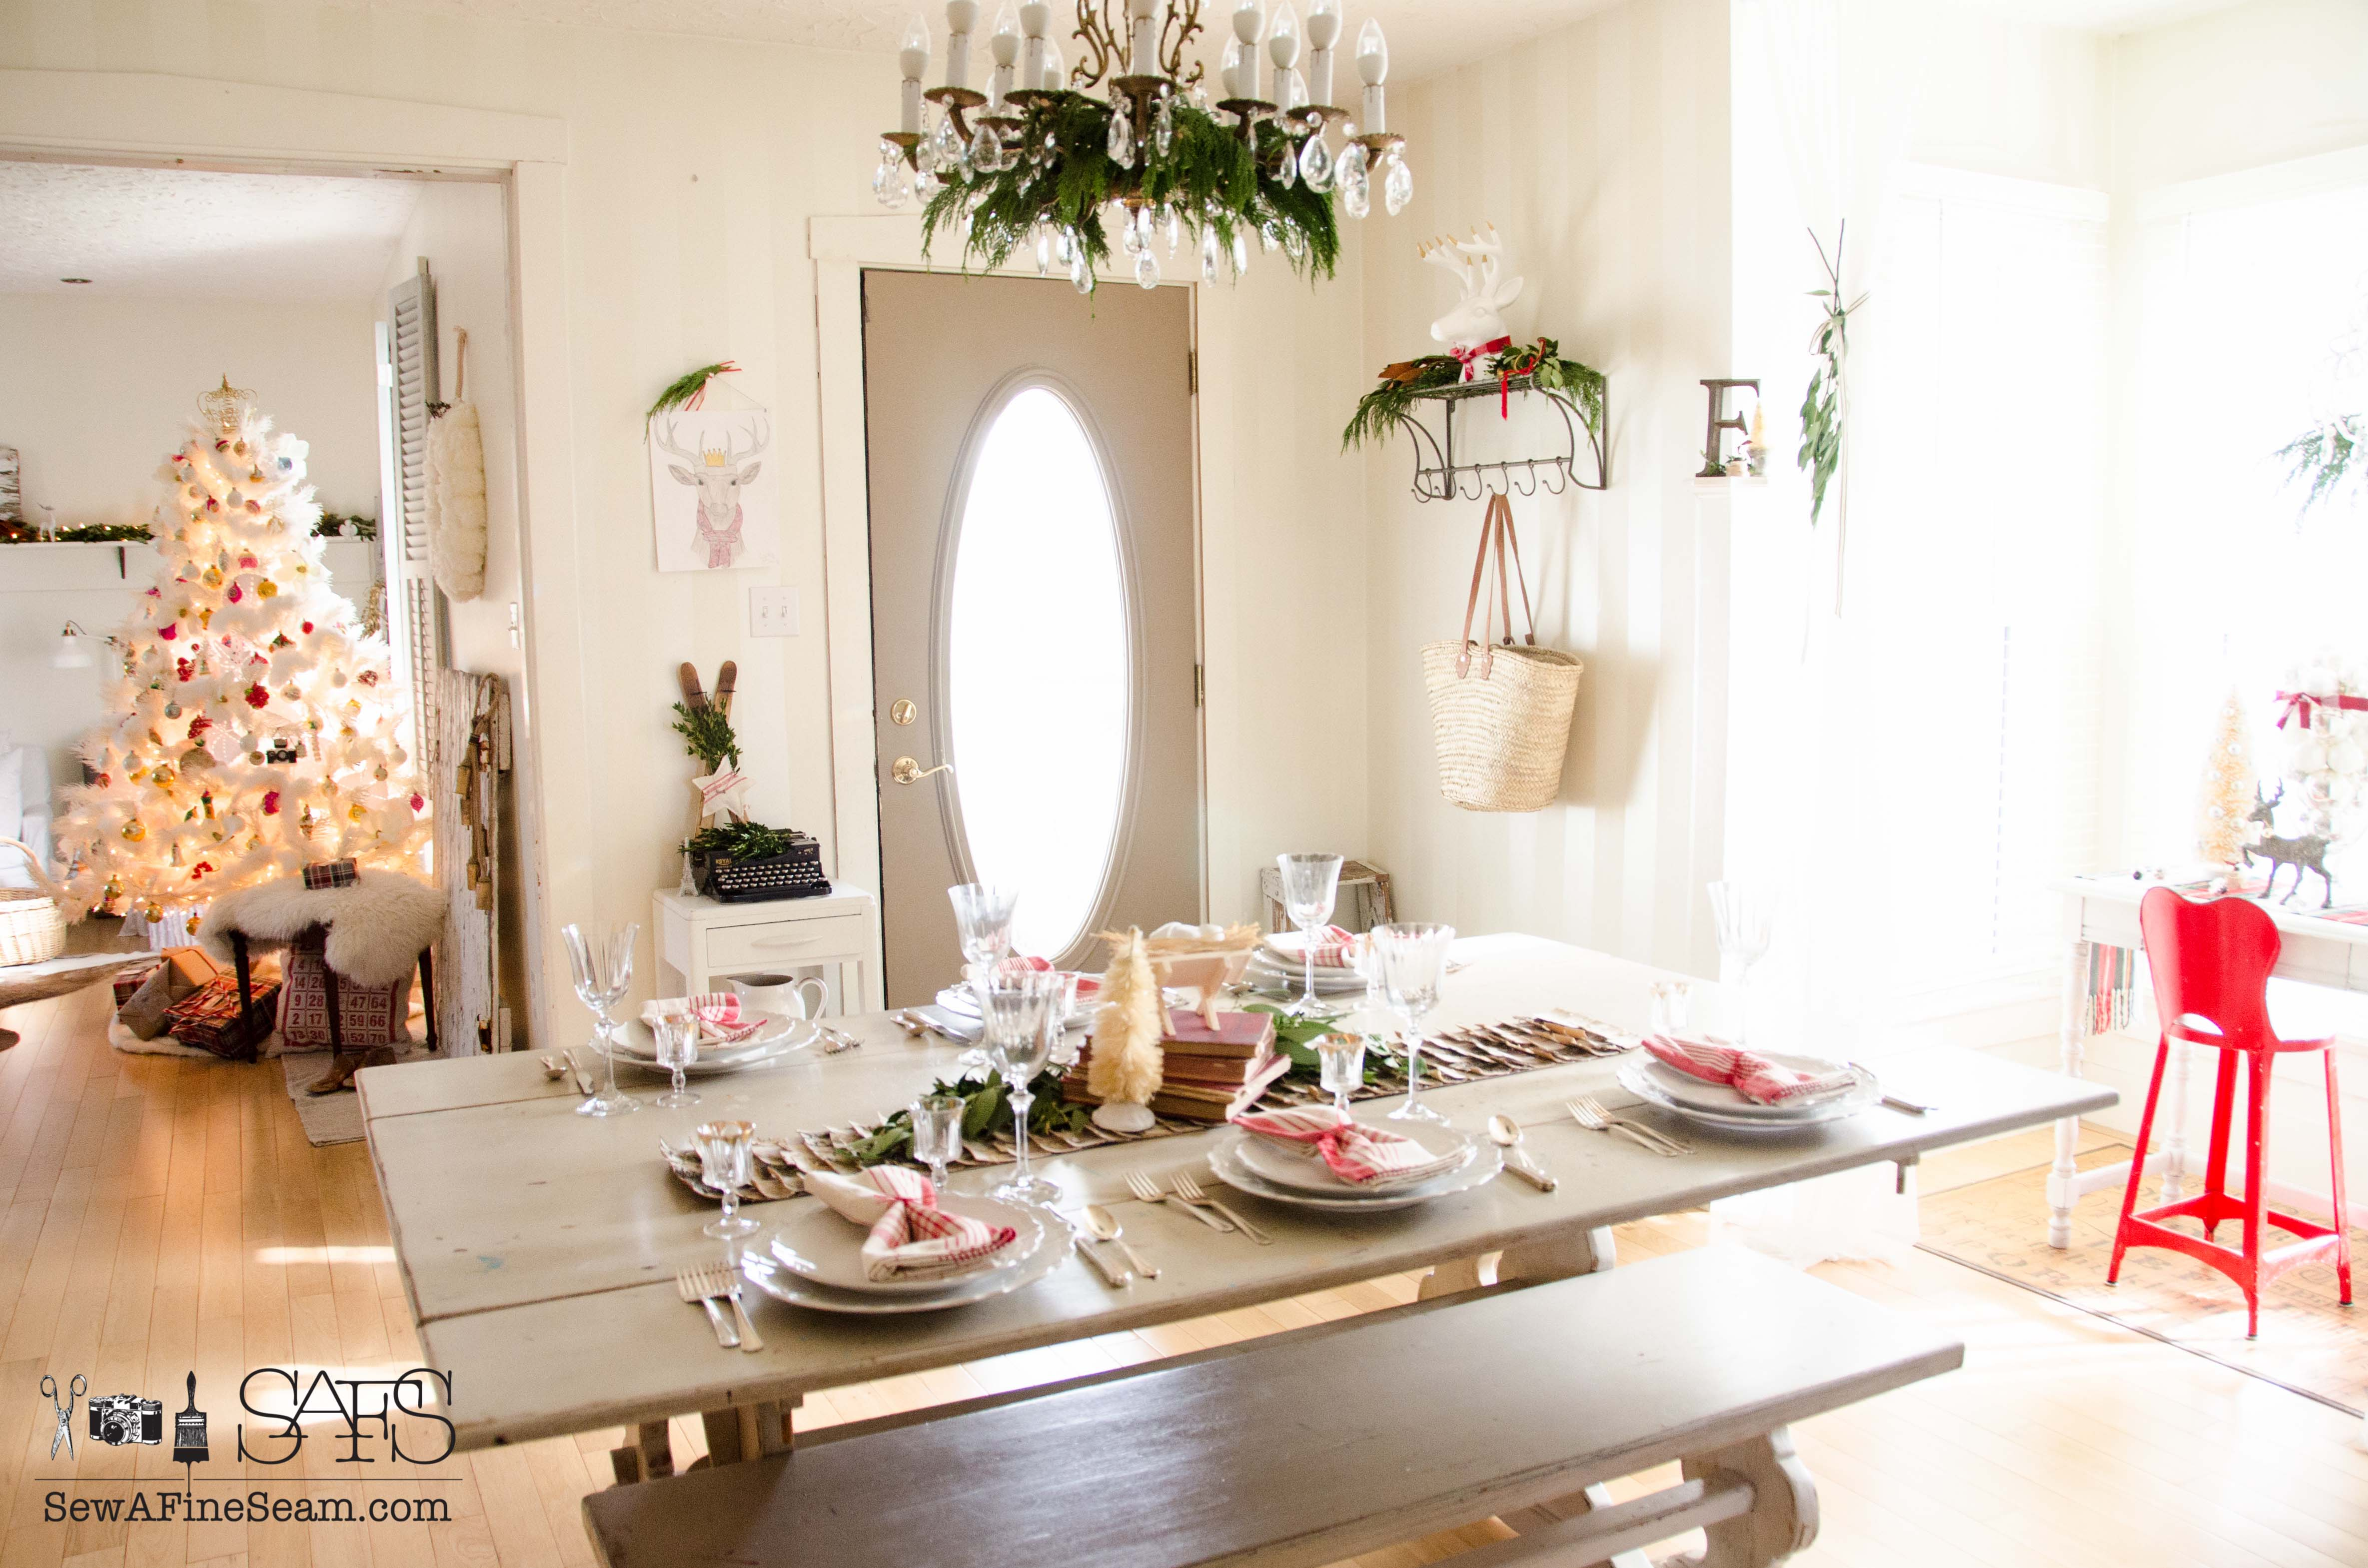 dining room decked out for christmas sew a fine seam dining room table set for christmas dinner